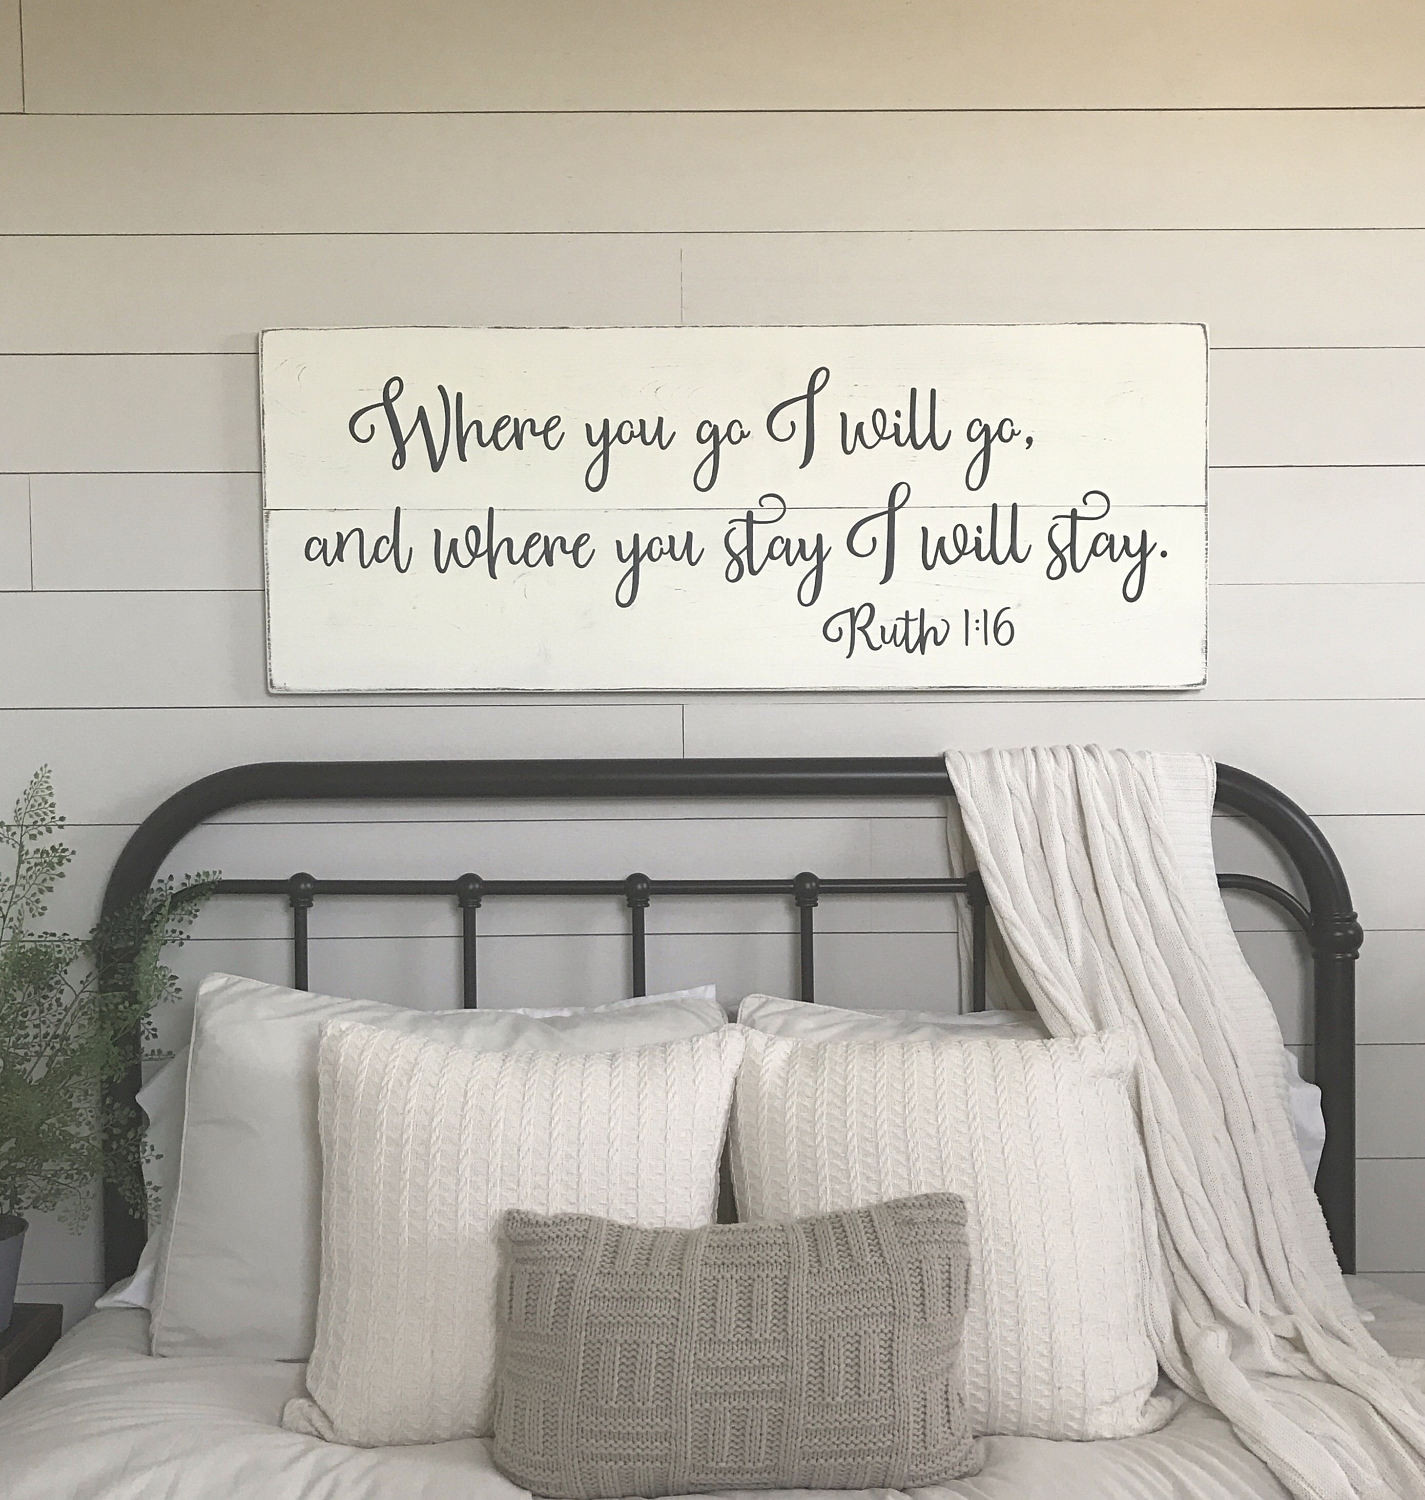 Best ideas about Wall Decor For Bedroom . Save or Pin Bedroom wall decor Where you go I will go wood signs Now.